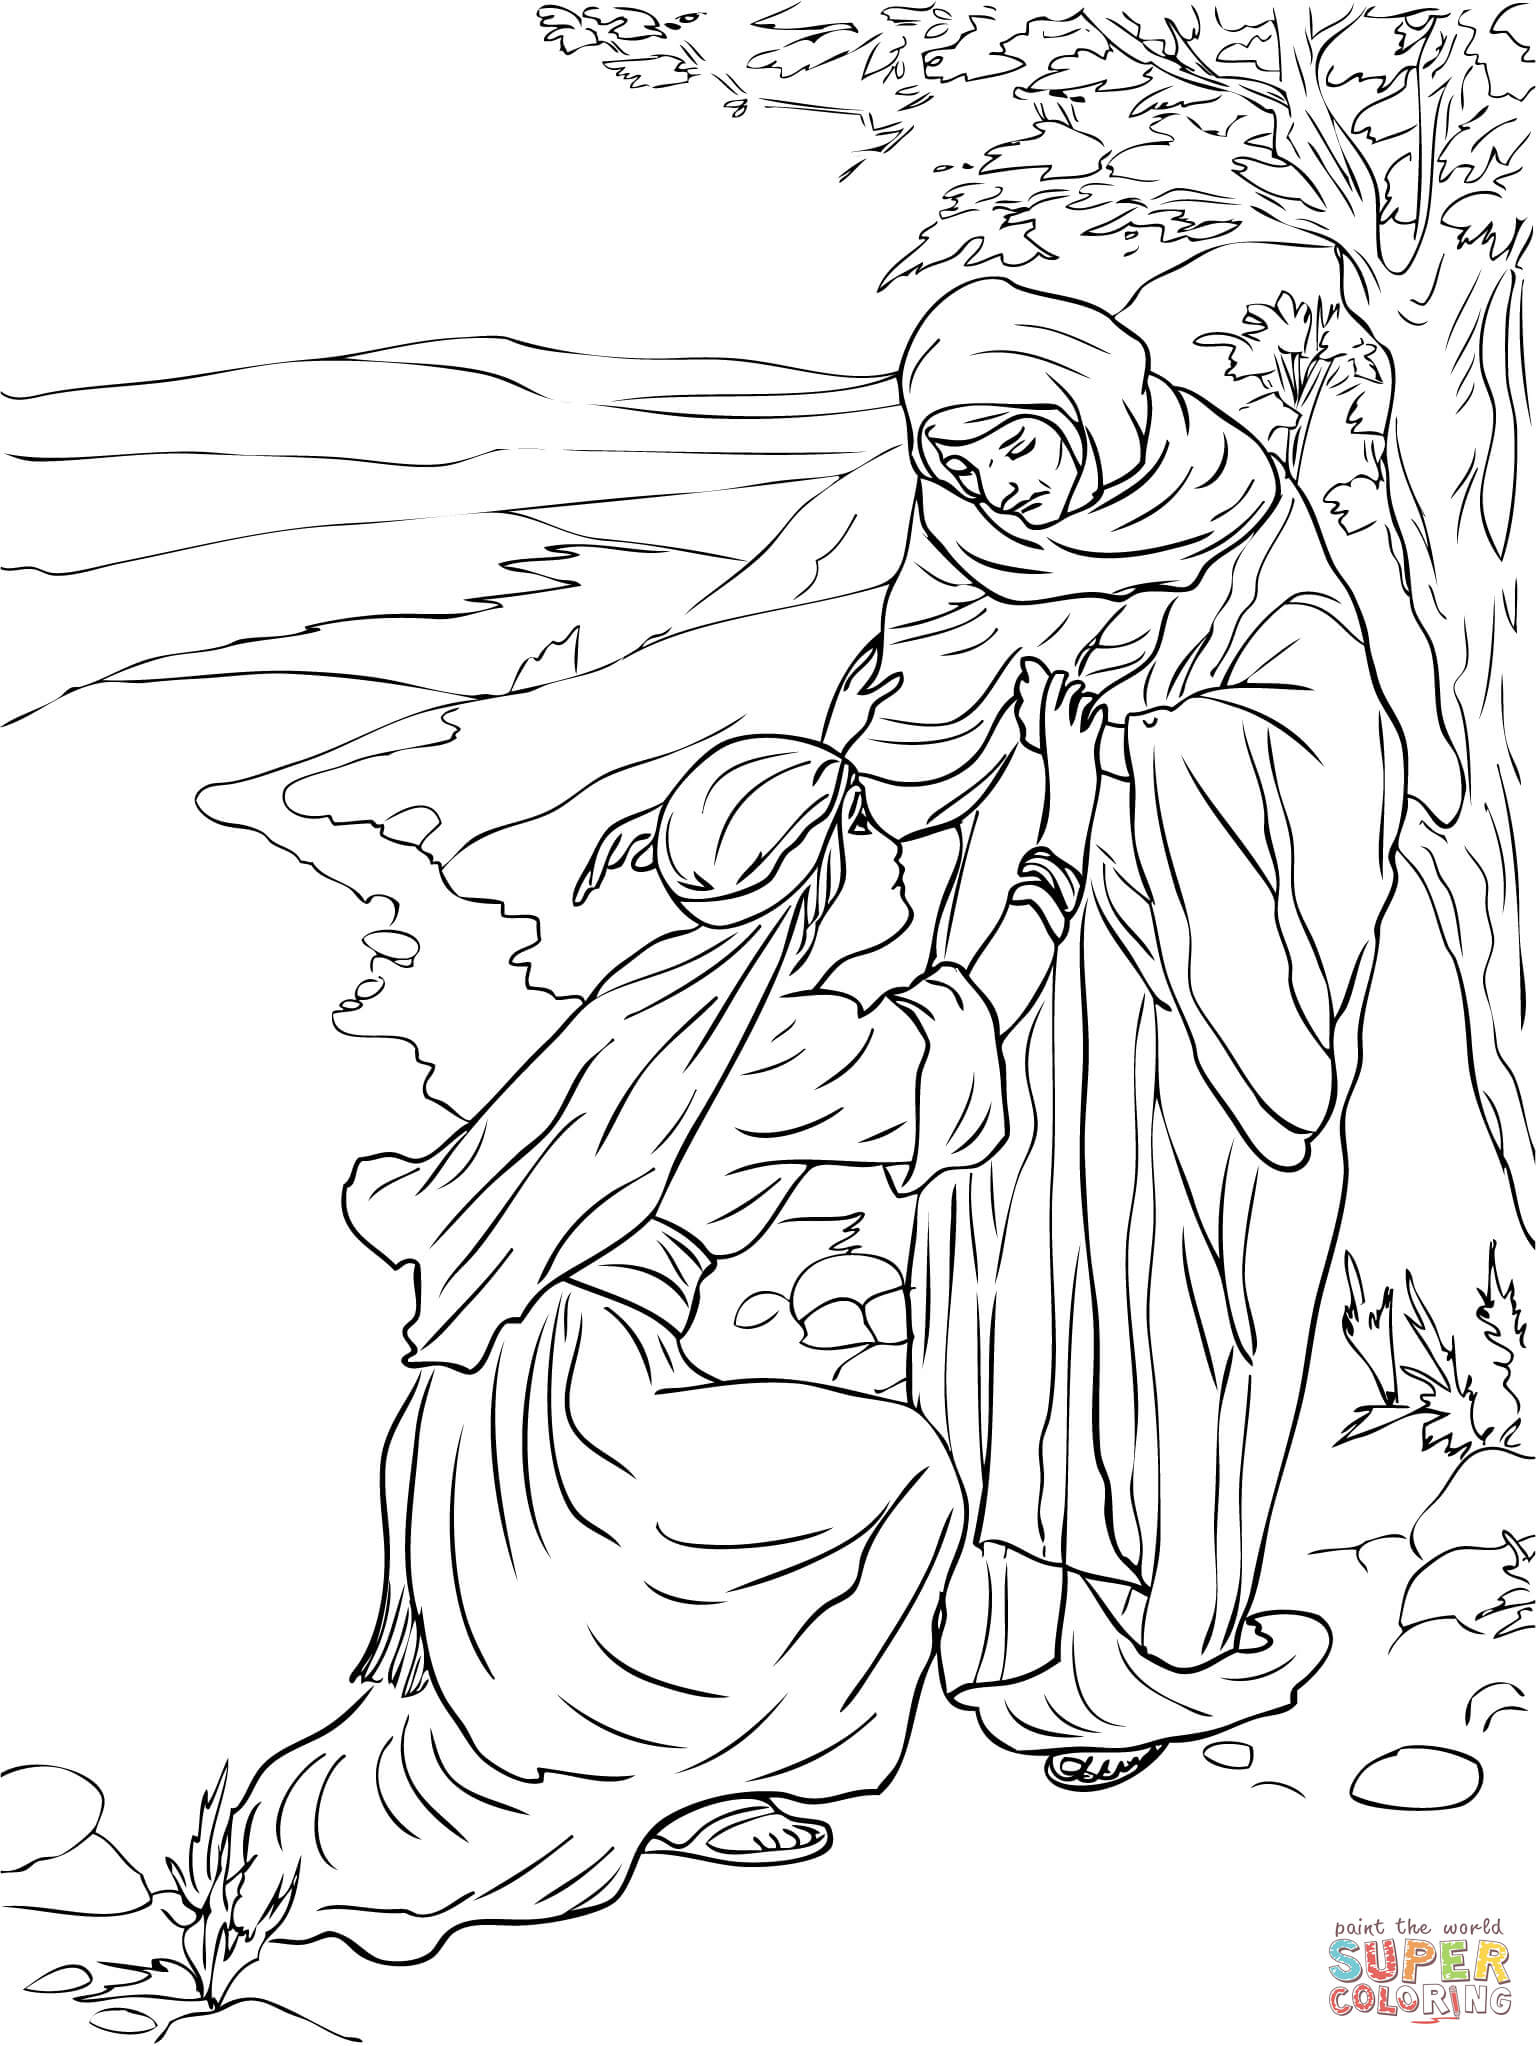 1536x2046 Ruth And Naomi Coloring Page Free Printable Pages On Ruth Naomi